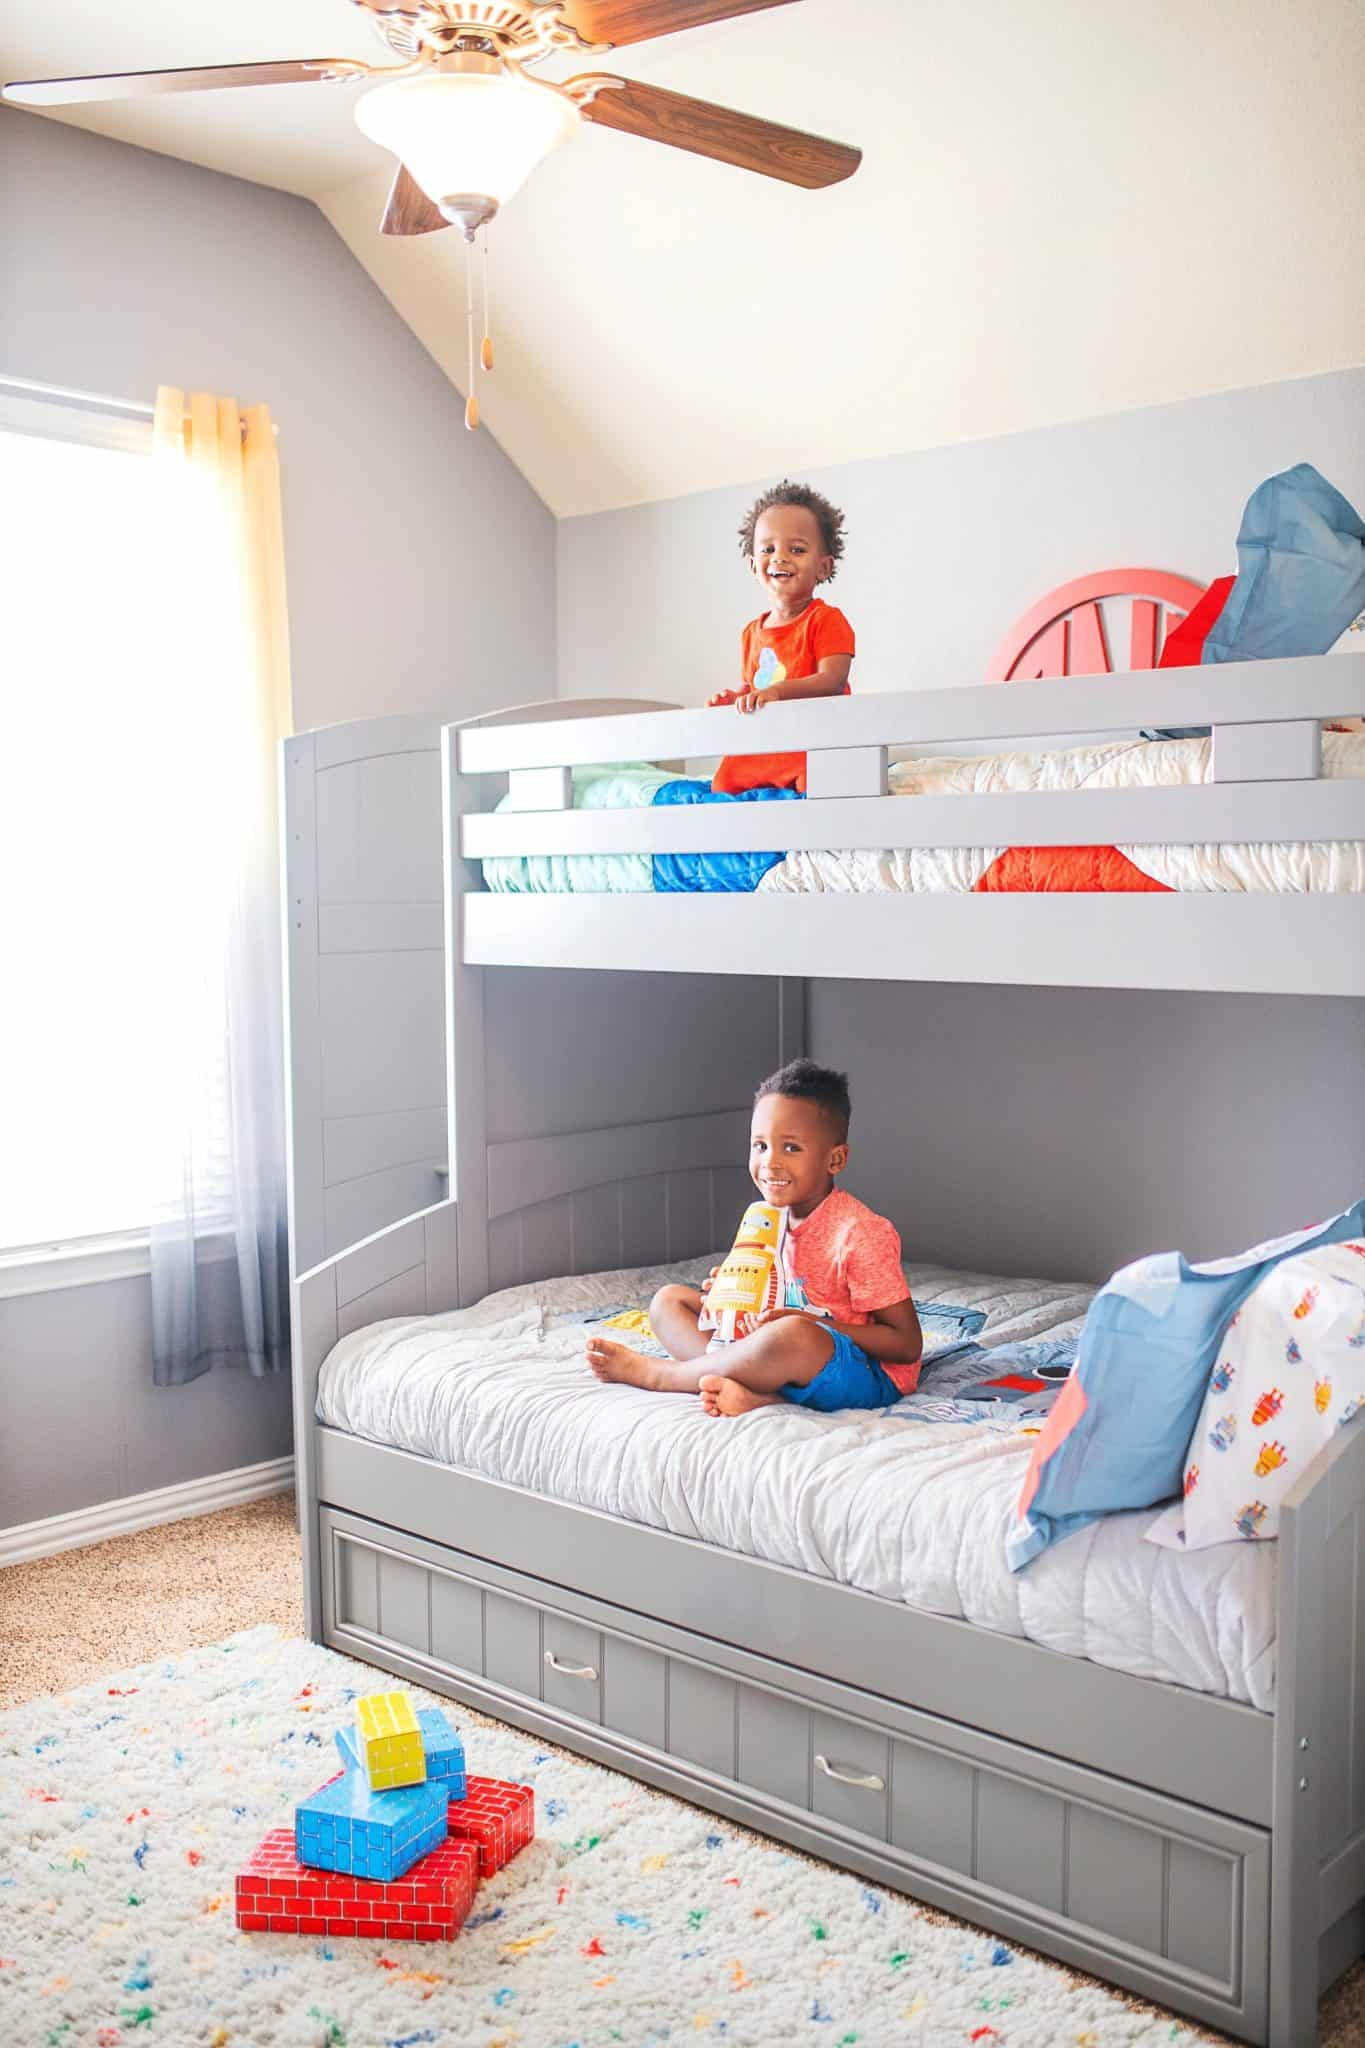 Bunk Bed Decorating Ideas.Boys Bunk Bed Room Ideas Robot Theme Glamorous Versatility